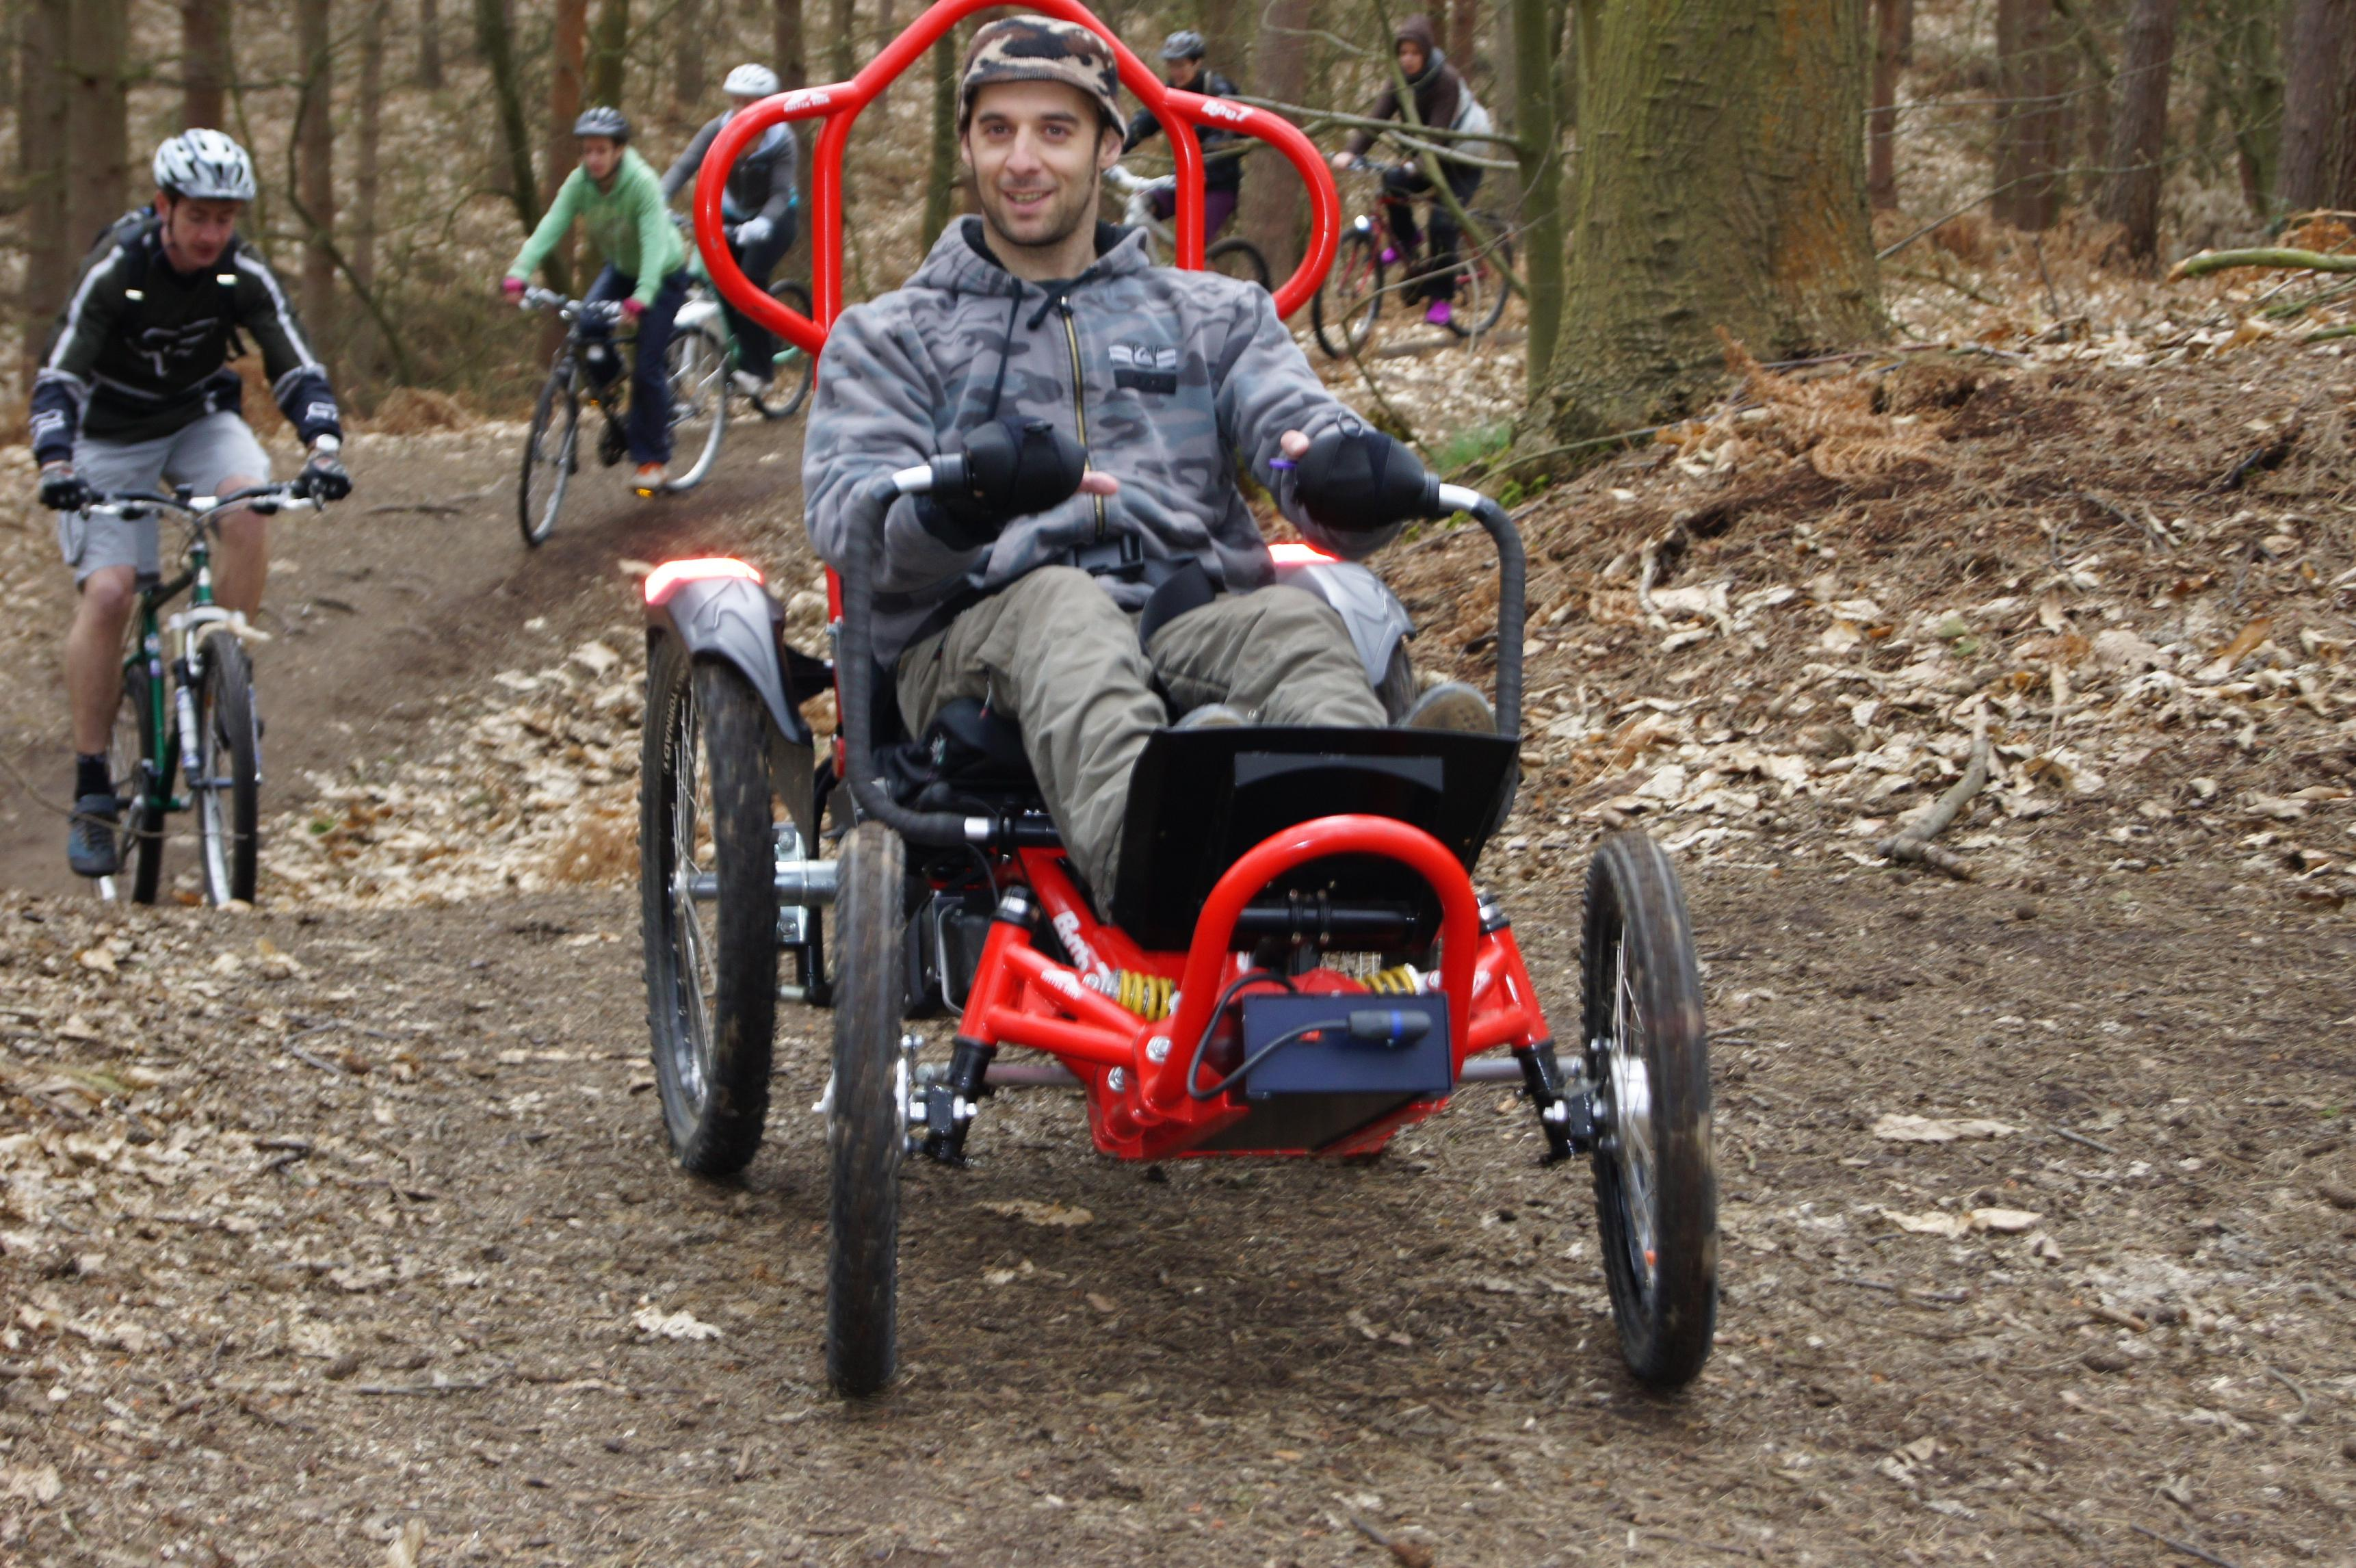 Molten Rock All Terrain Boma 7 Wheechair Being Enjoyed In Use on Woodland Track (Full Size)